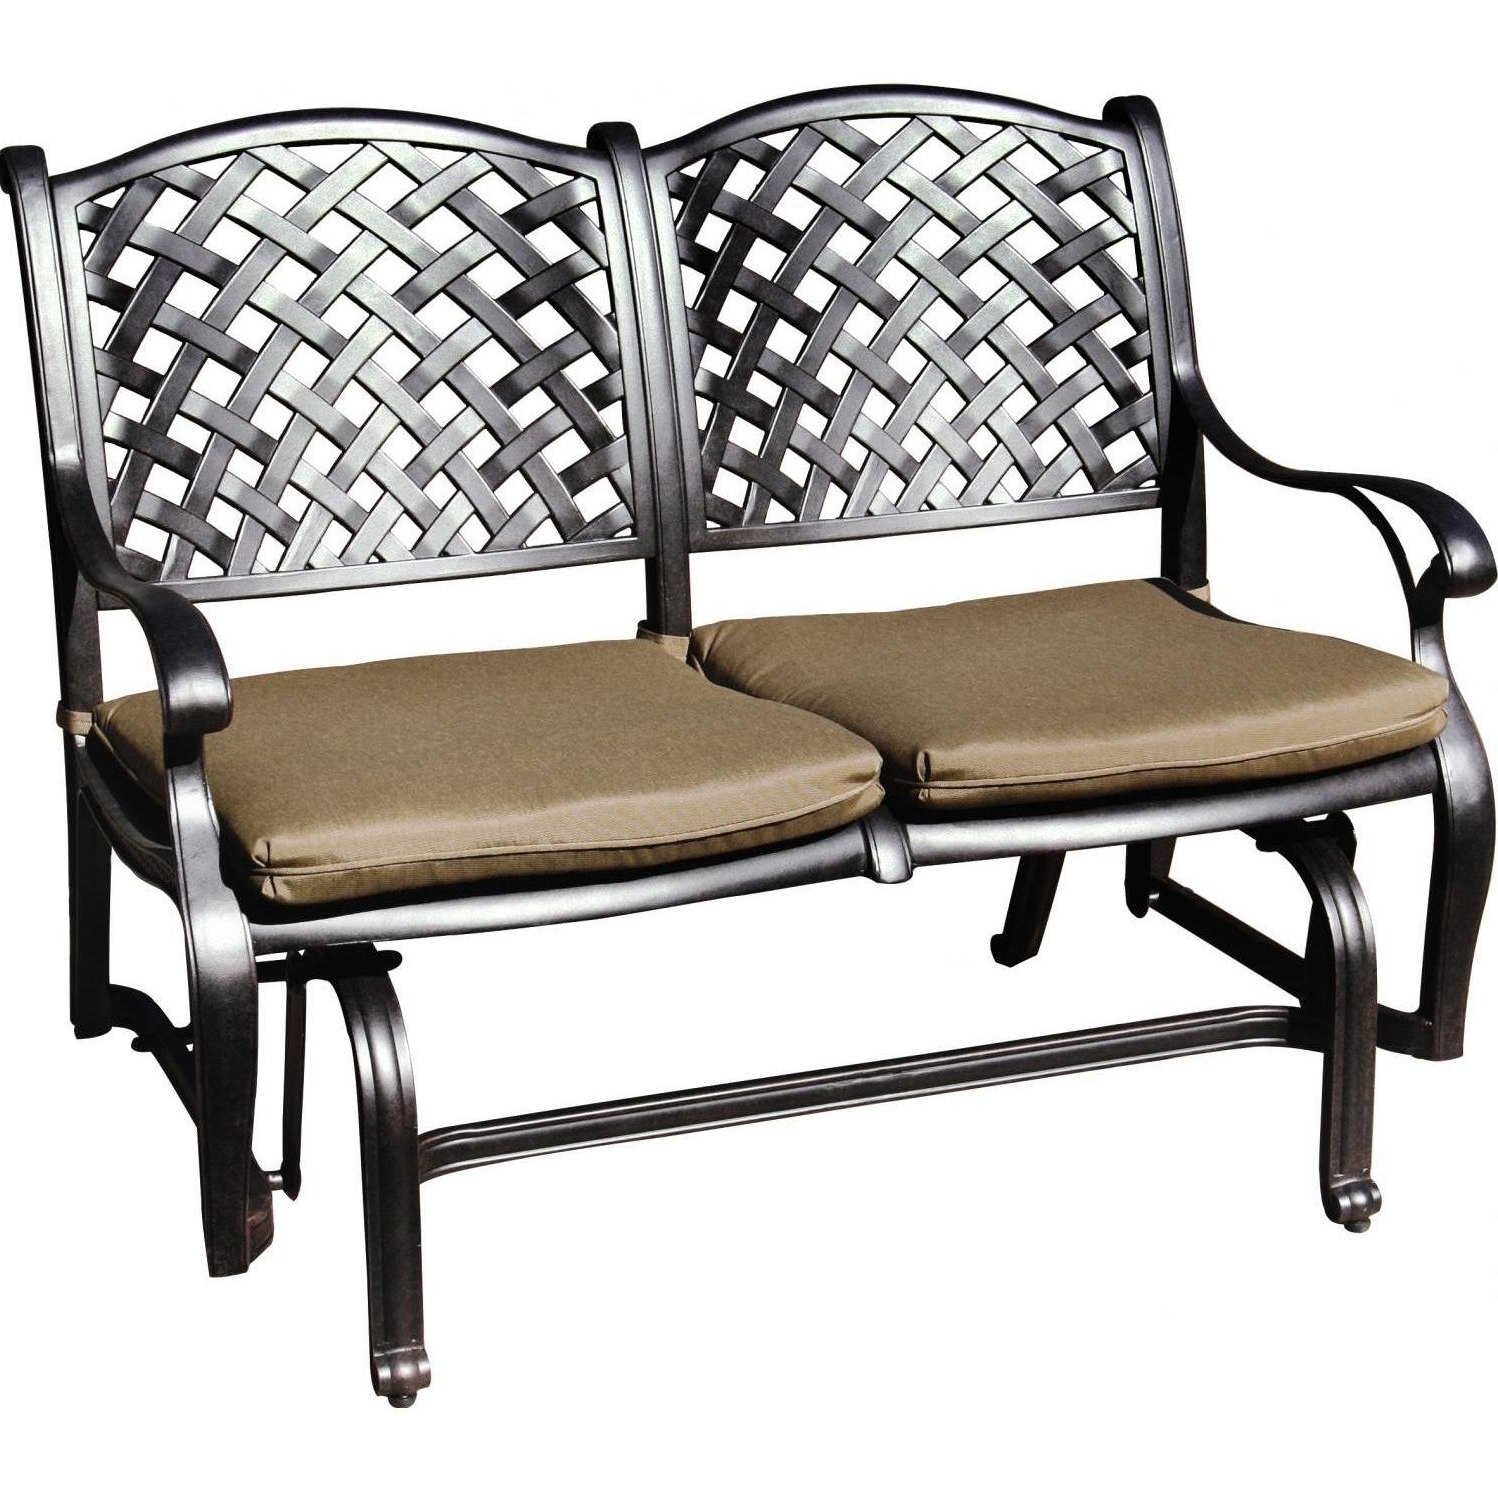 Most Recent Darlee Nassau Cast Aluminum Patio Bench Glider For Aluminum Glider Benches With Cushion (Gallery 3 of 30)